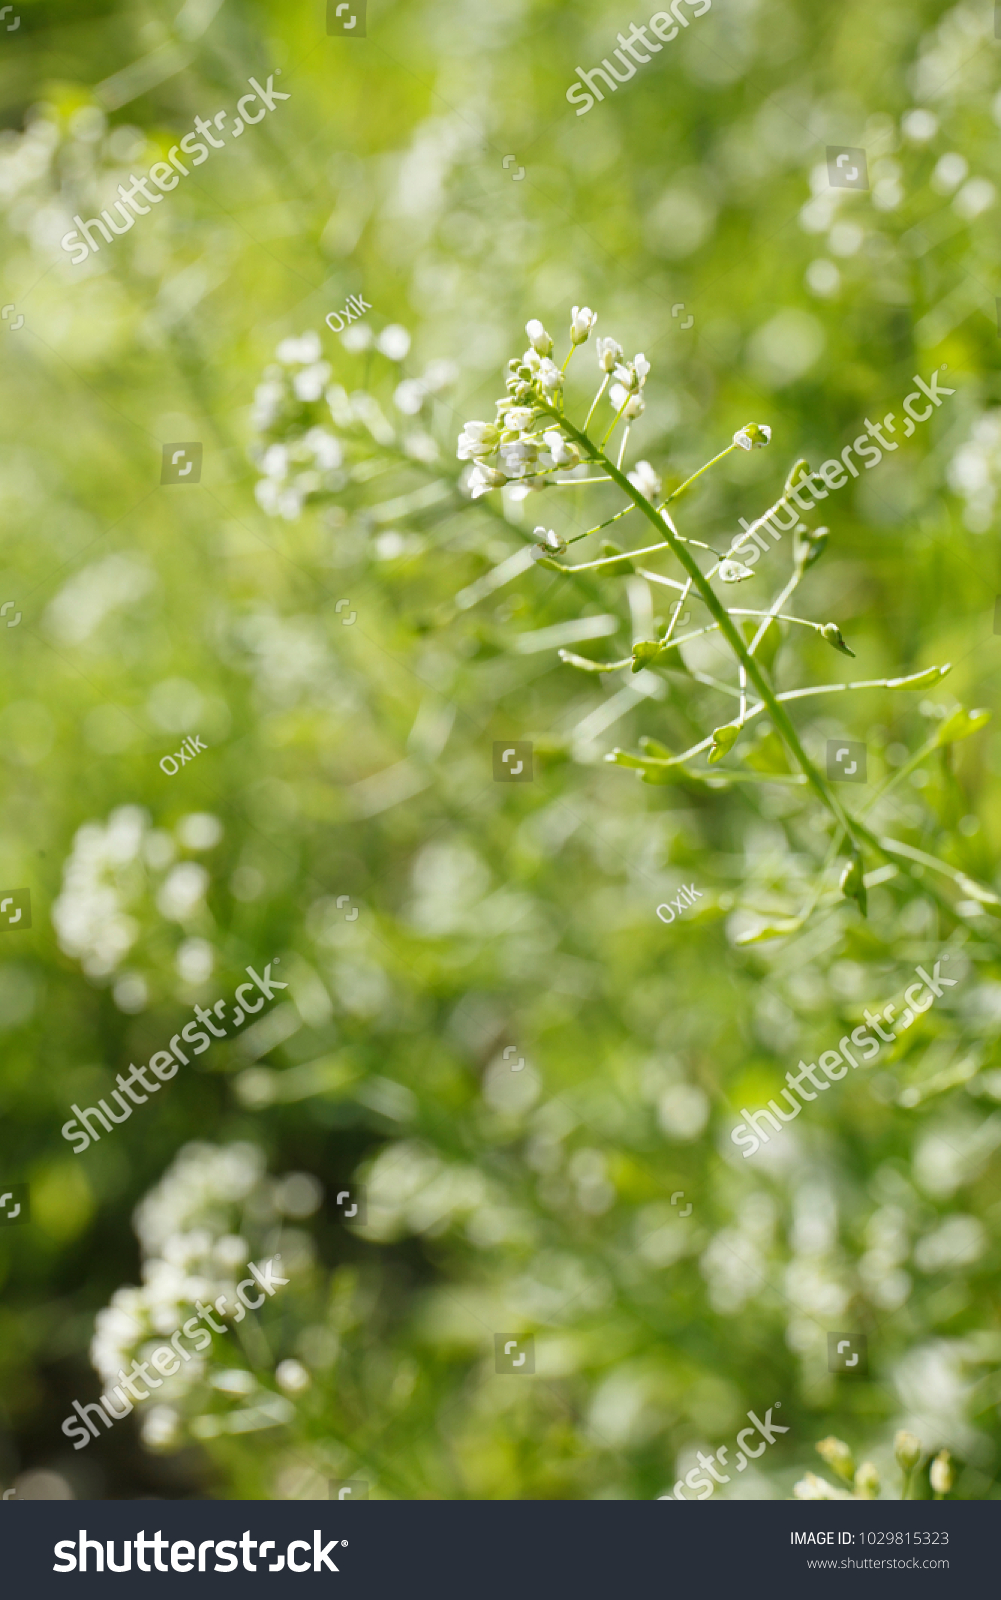 Green White Flower Weed Grass Shepherds Stock Photo Royalty Free